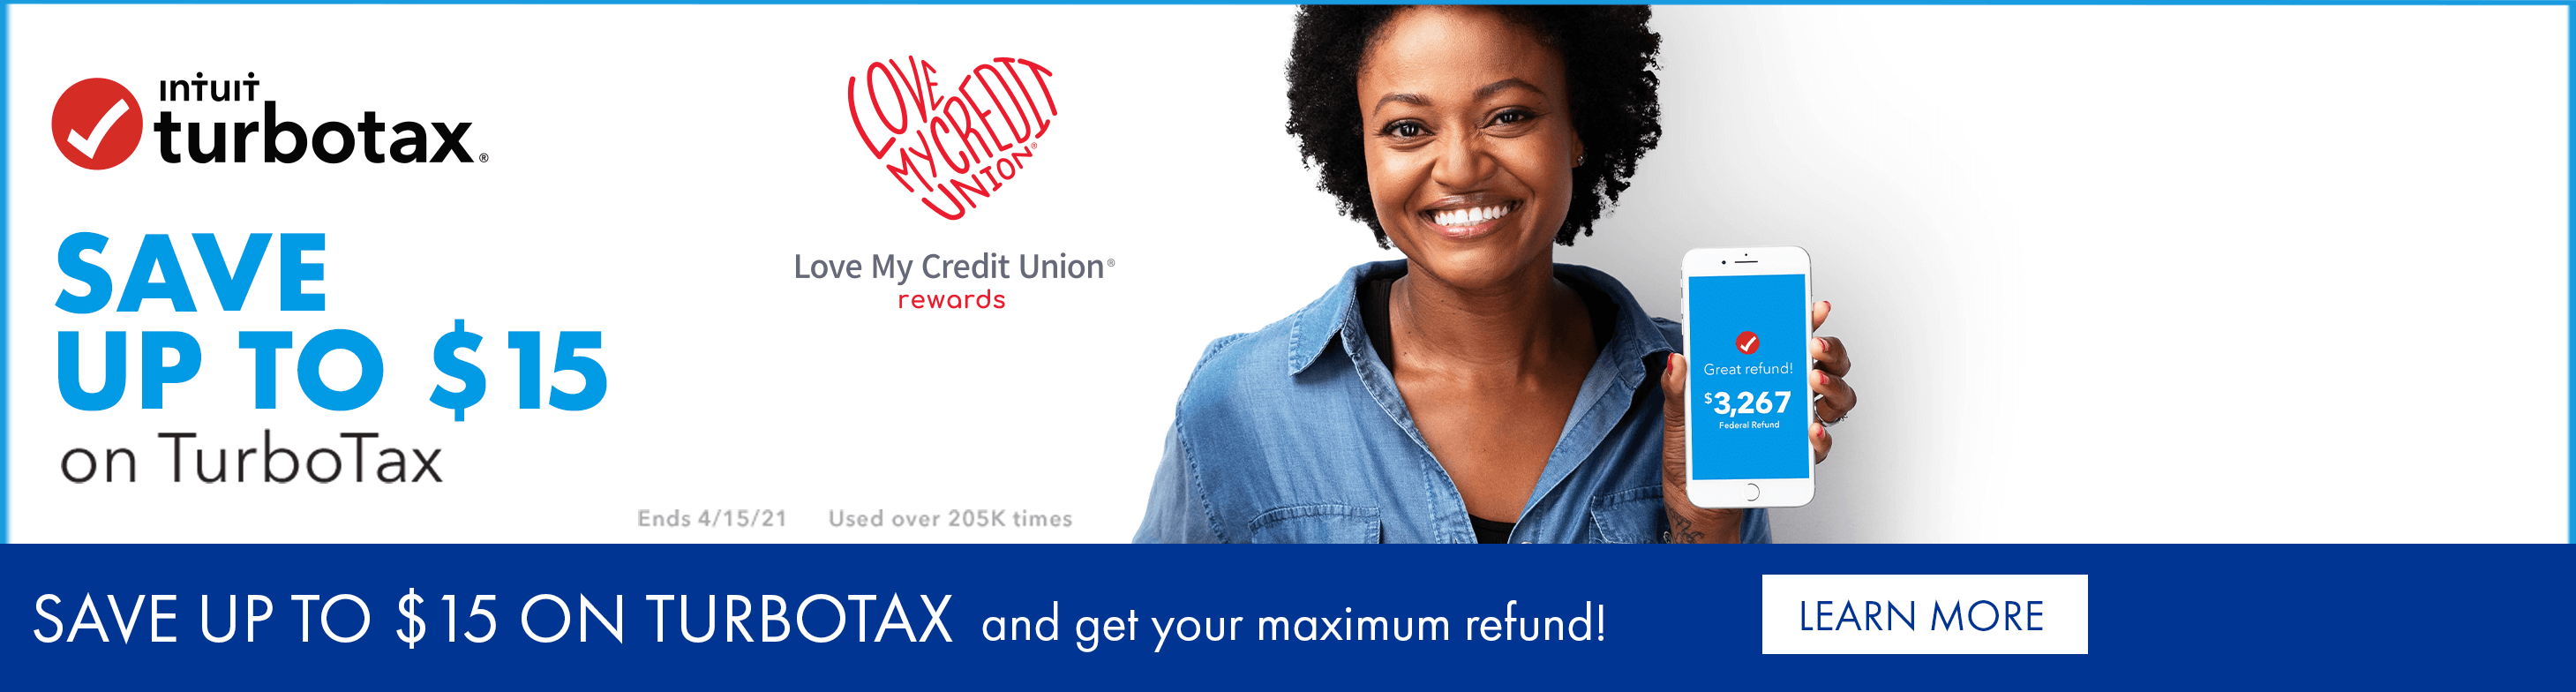 Save up to $15 on TurboTax and get your maximum refund!